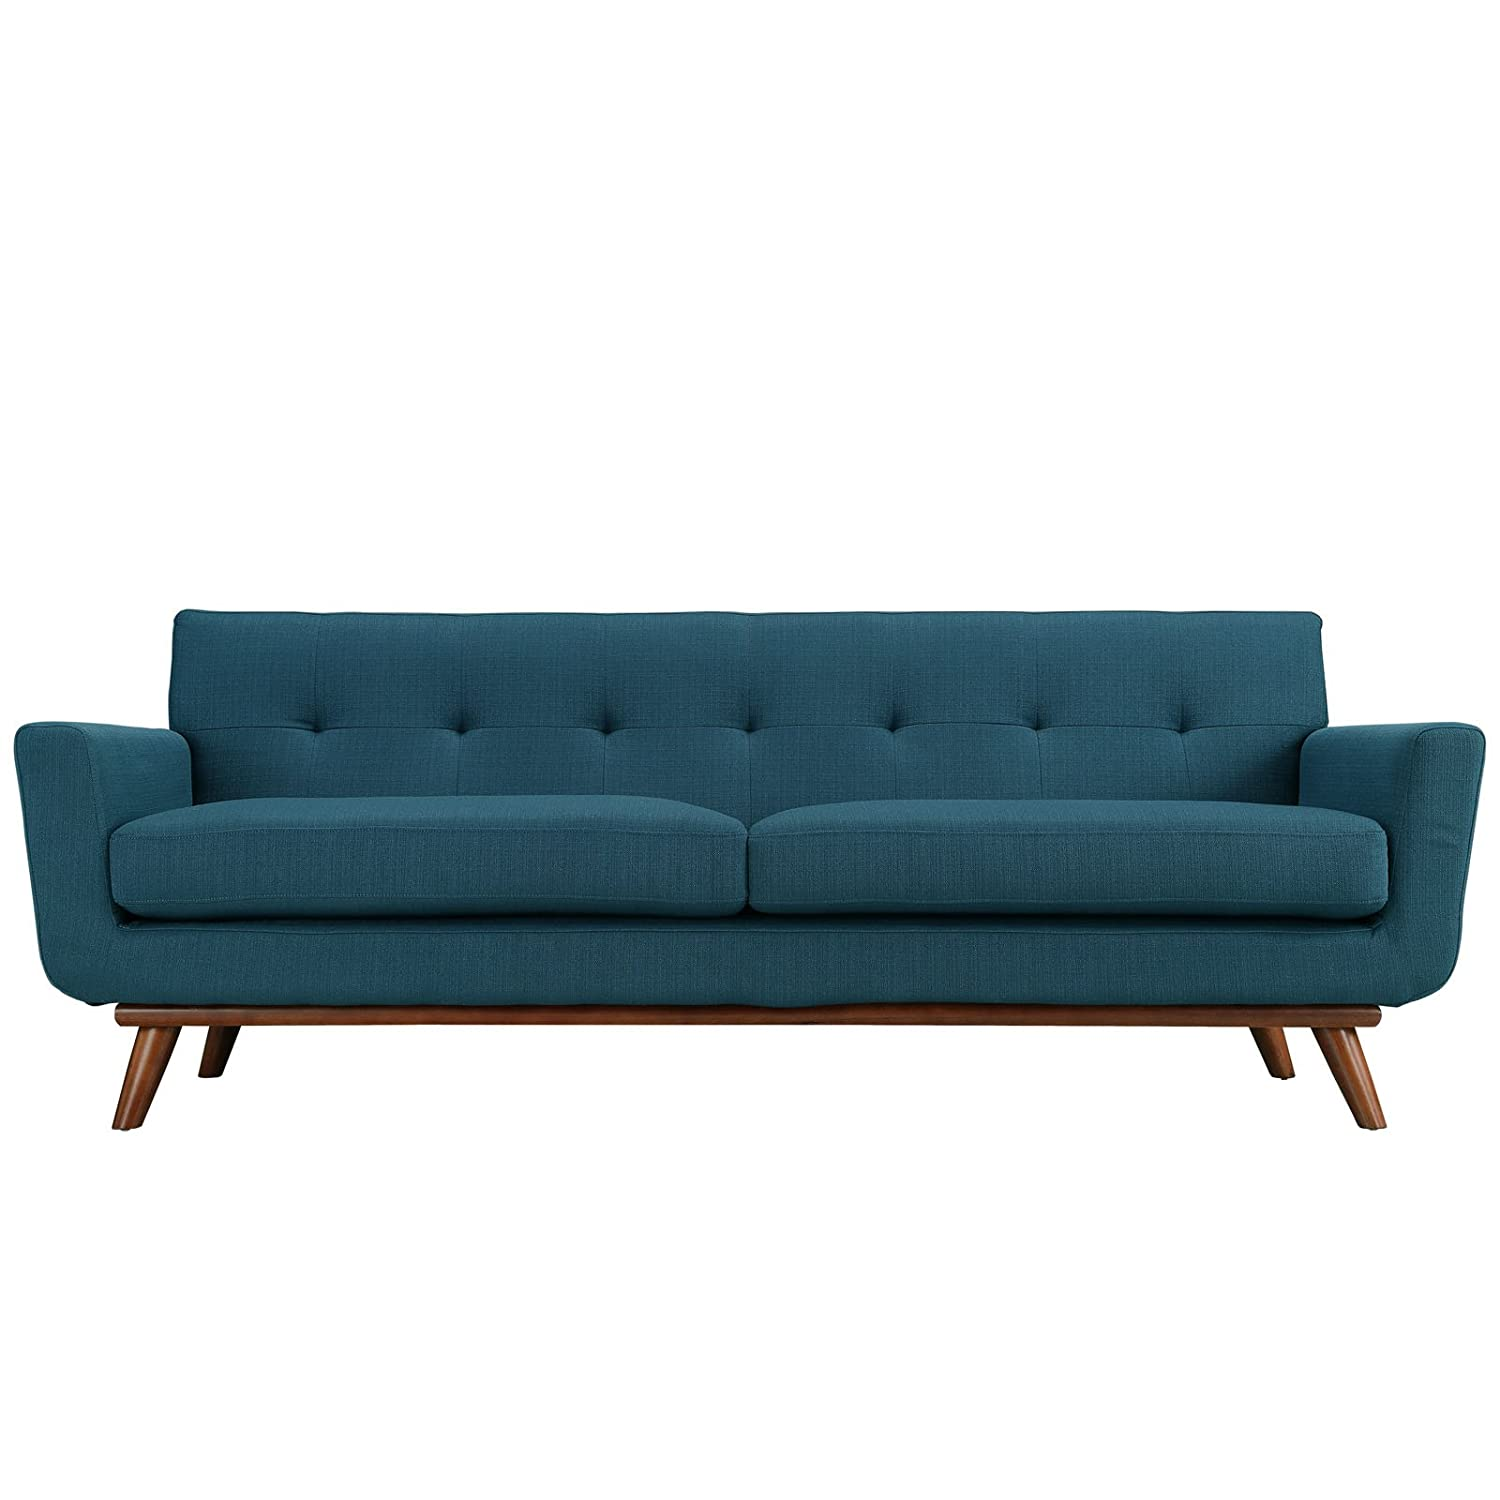 modern vintage couch. Amazon.com: Modway Engage Mid-Century Modern Upholstered Fabric Sofa In Azure: Kitchen \u0026 Dining Vintage Couch